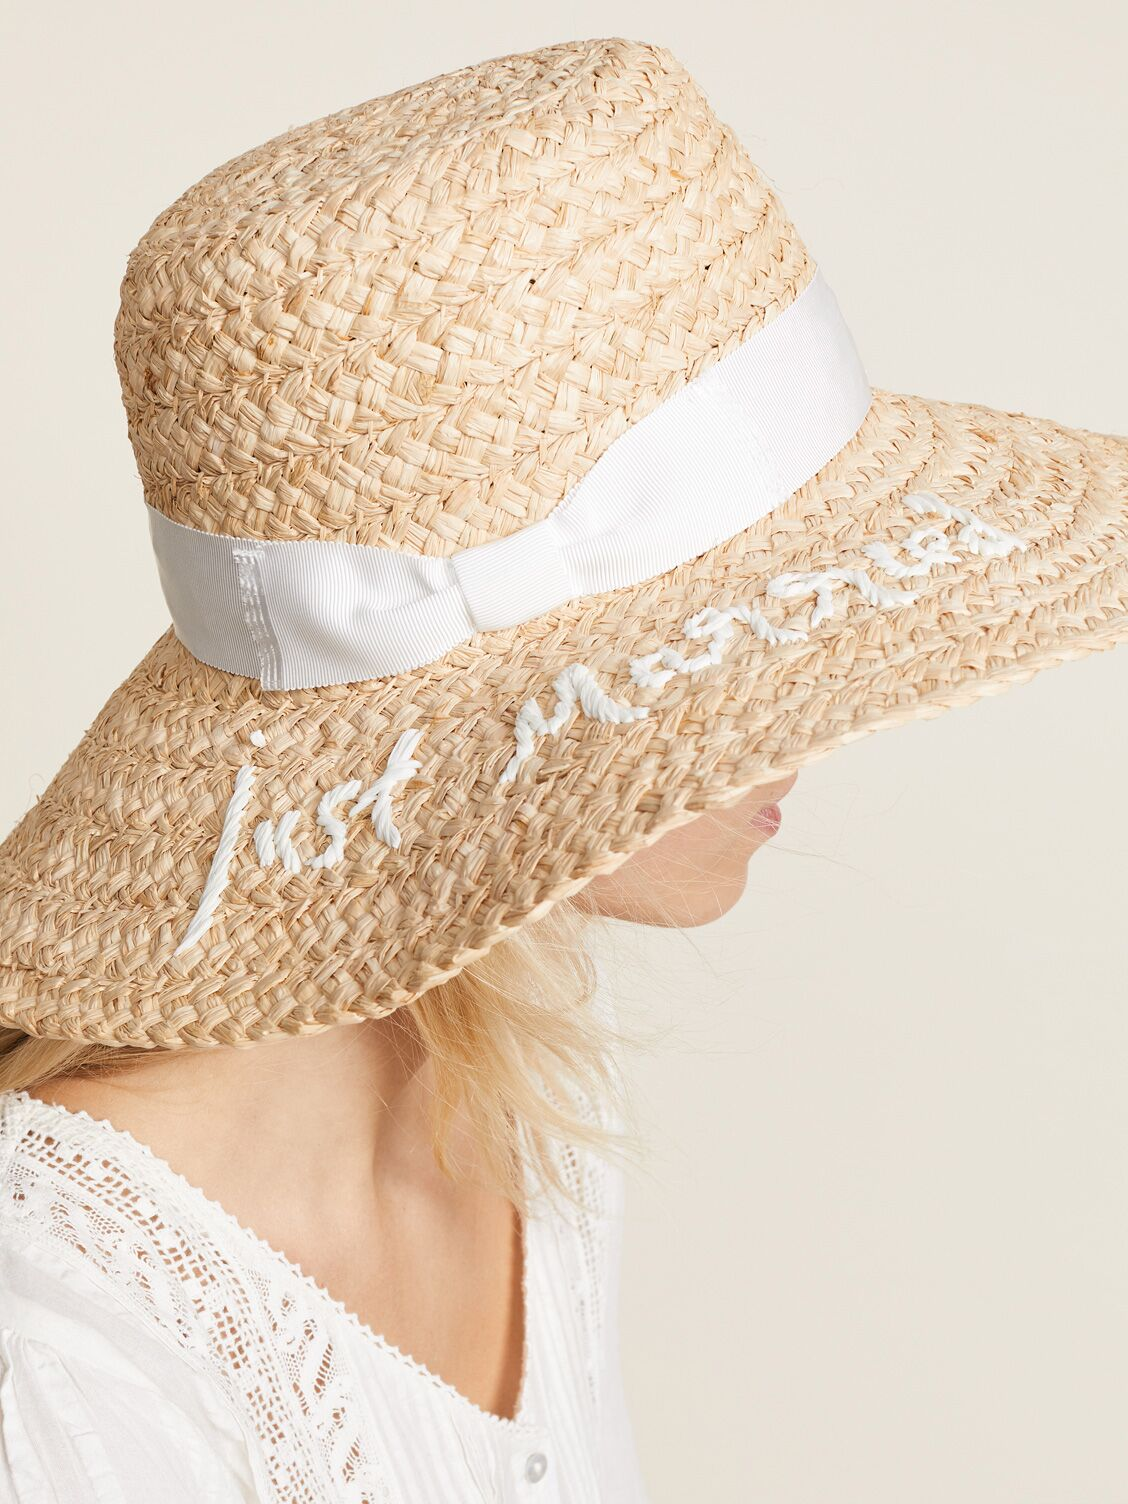 c722b2068aef1 Floppy Sun Hats With Writing for Honeymoon